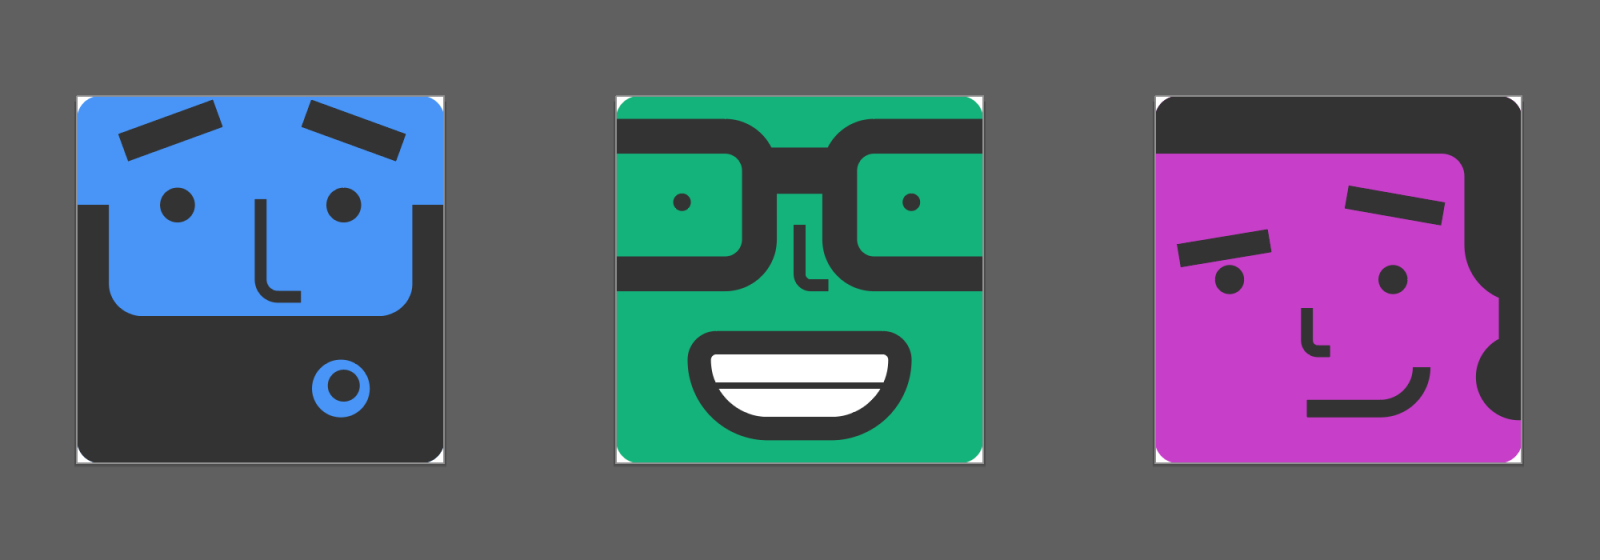 Three 128 x 128px artboards in Adobe Illustrator displaying avatar illustrations. The first is a bearded face with raised eyebrows, the second is a smiling face with large glasses, and the third is a smirking face with a ponytail.